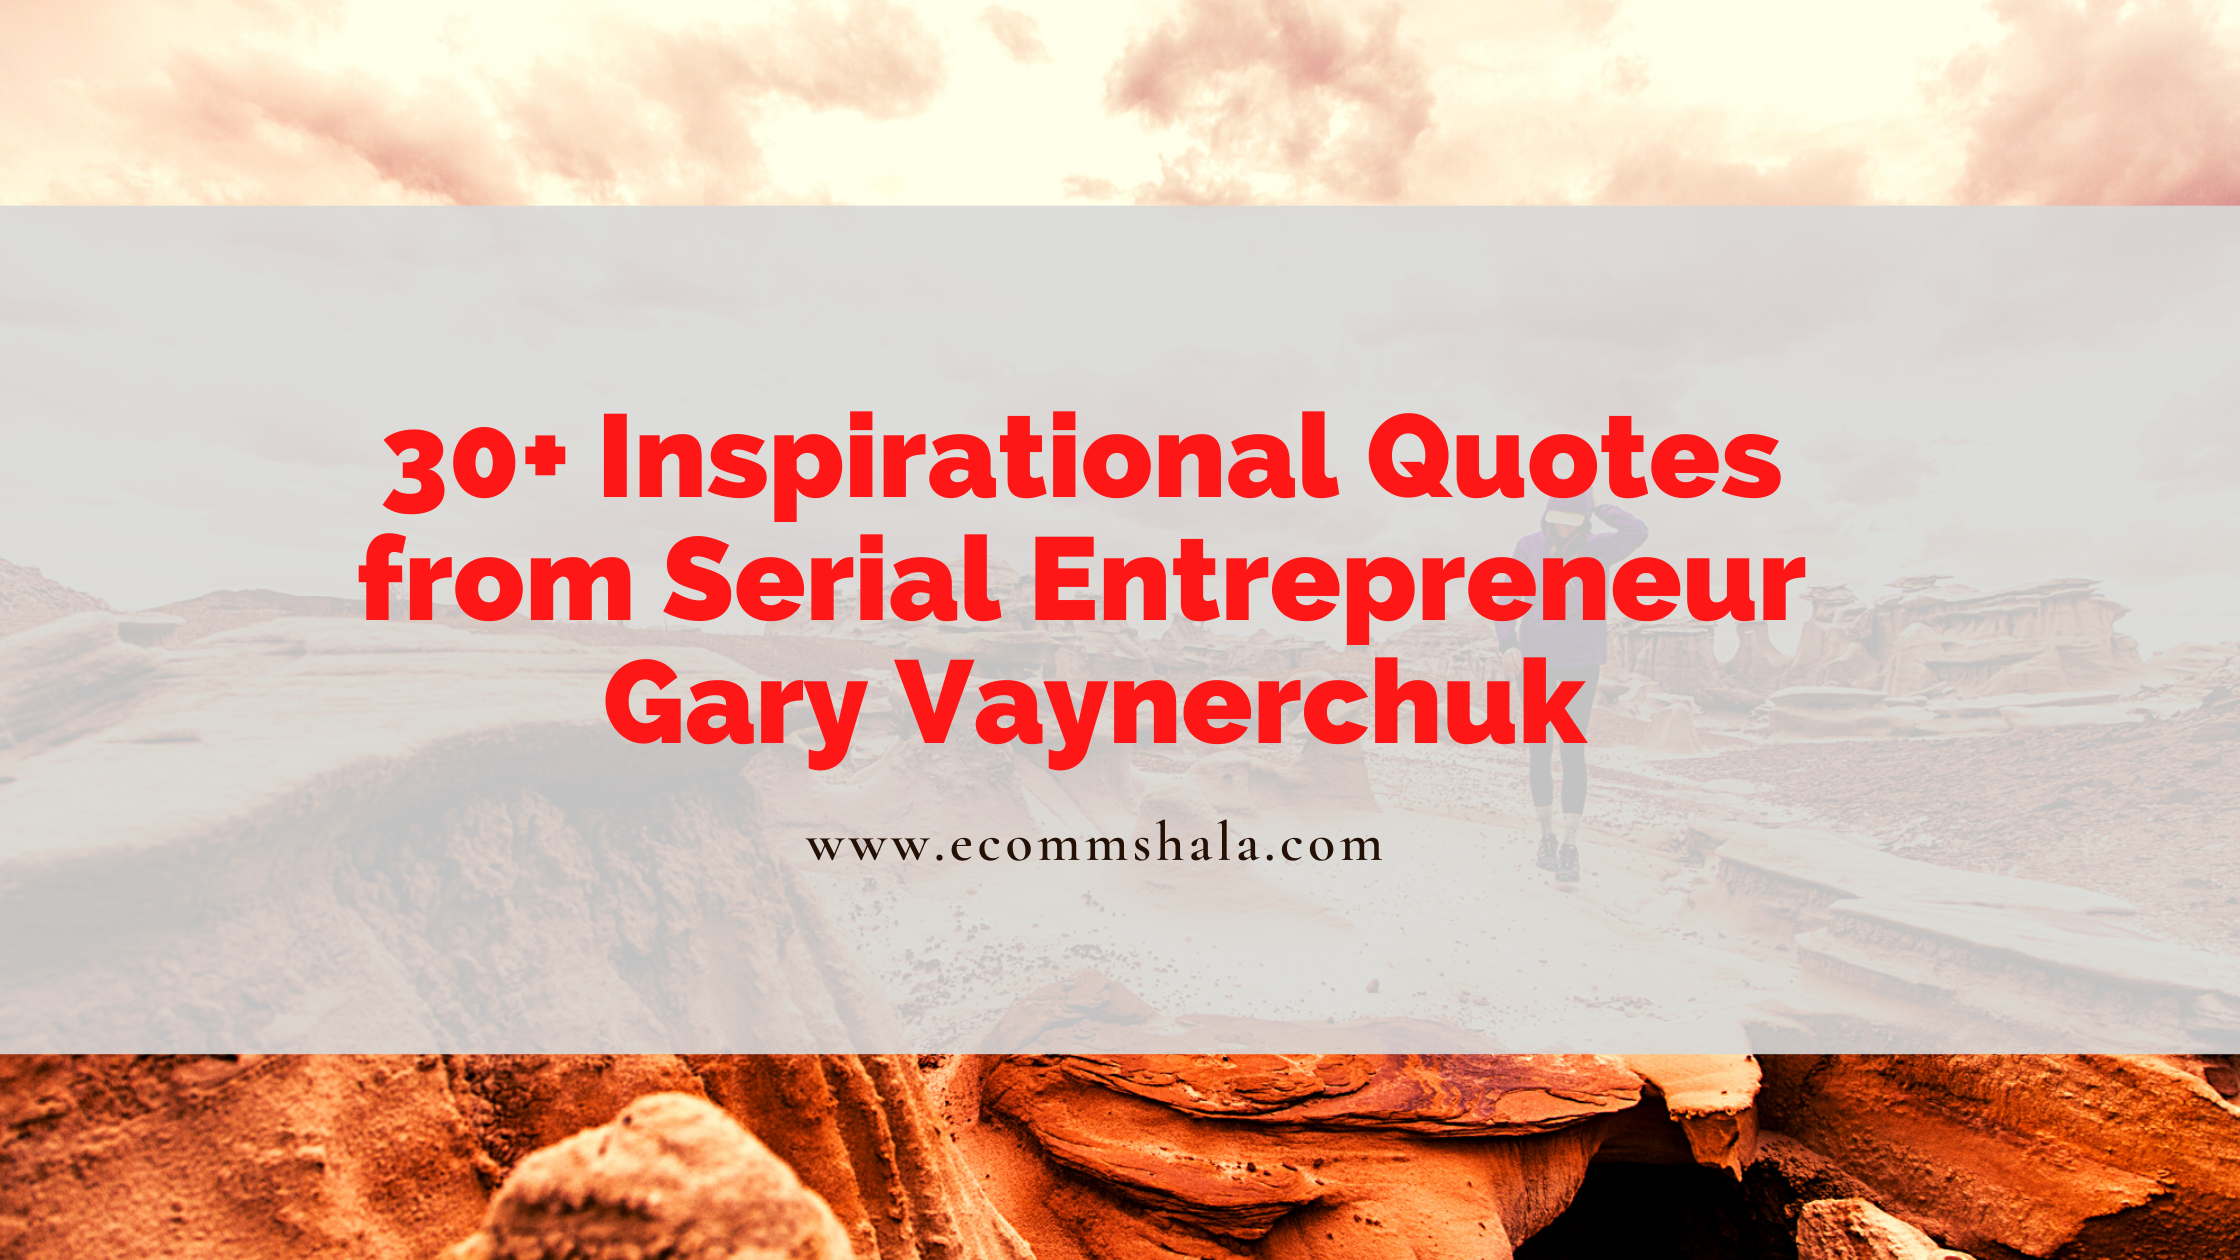 Inspirational Quotes from Gary Vaynerchuk